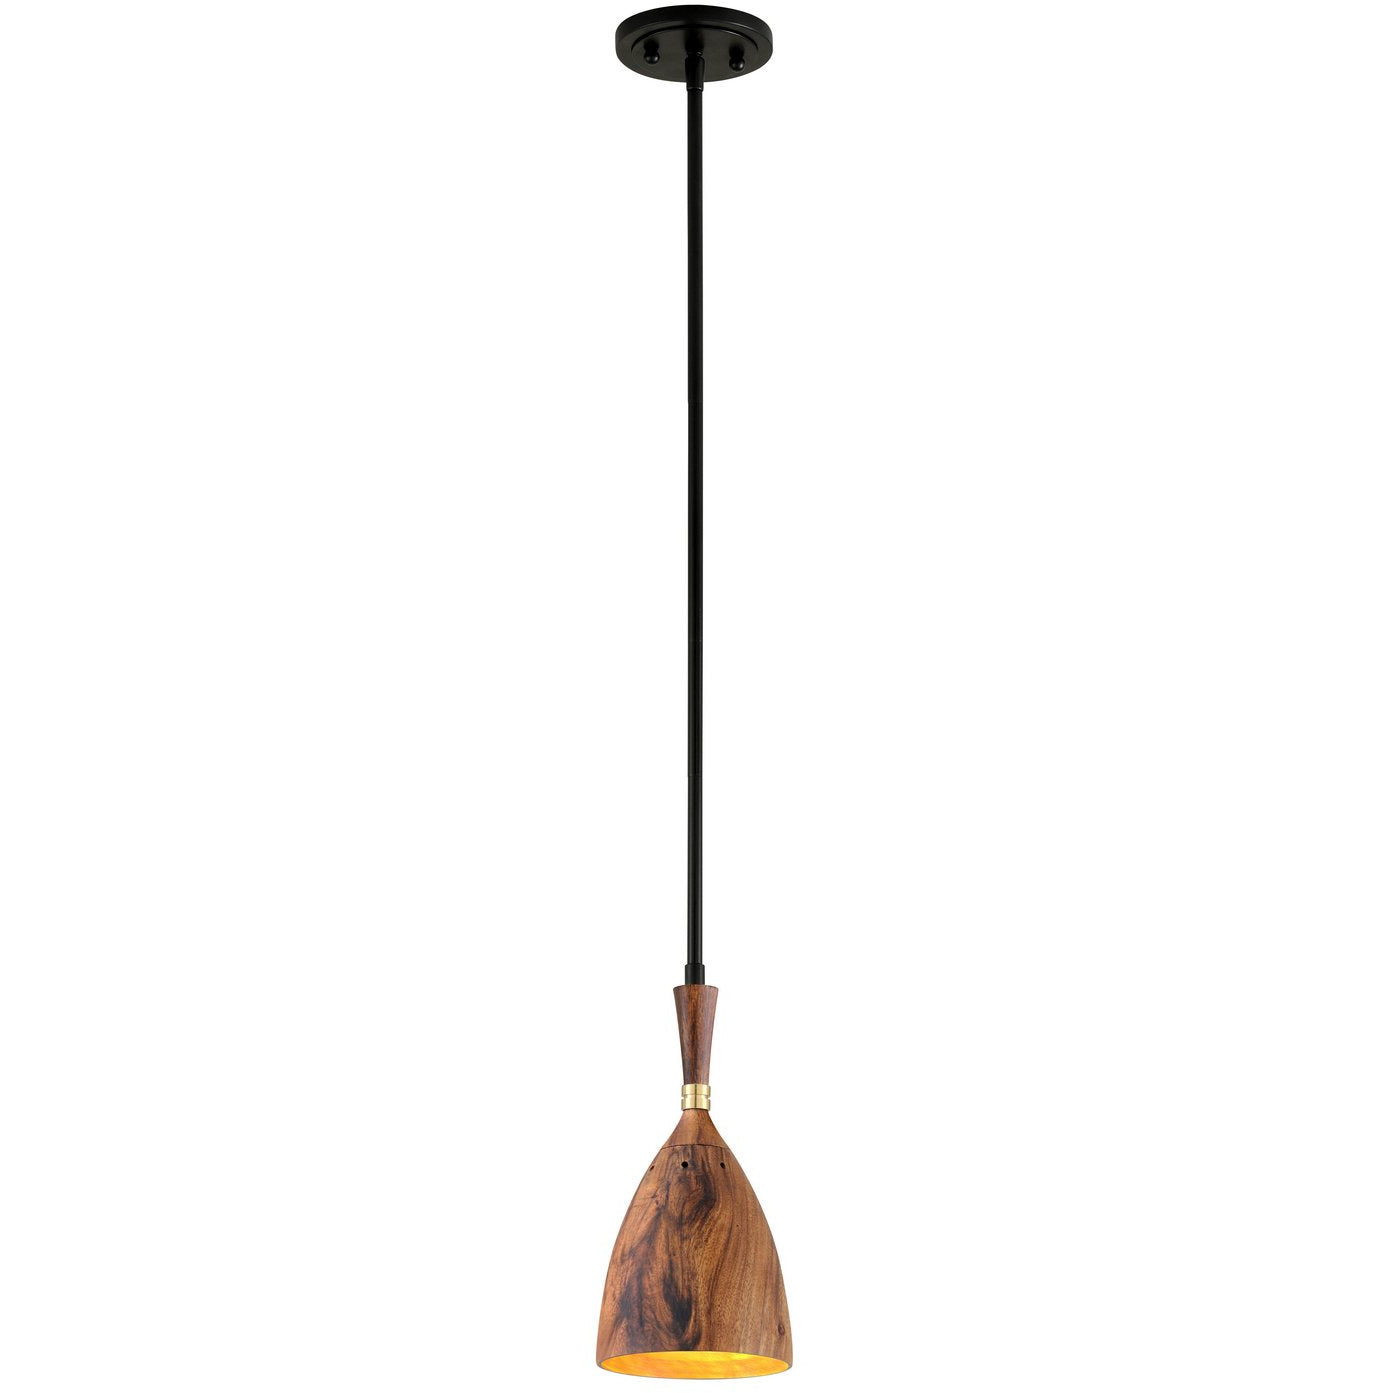 Corbett Lighting - 280-41 - Pendant - Utopia - Black Brass Acacia Wood Shades - Martyn Lawrence Bullard